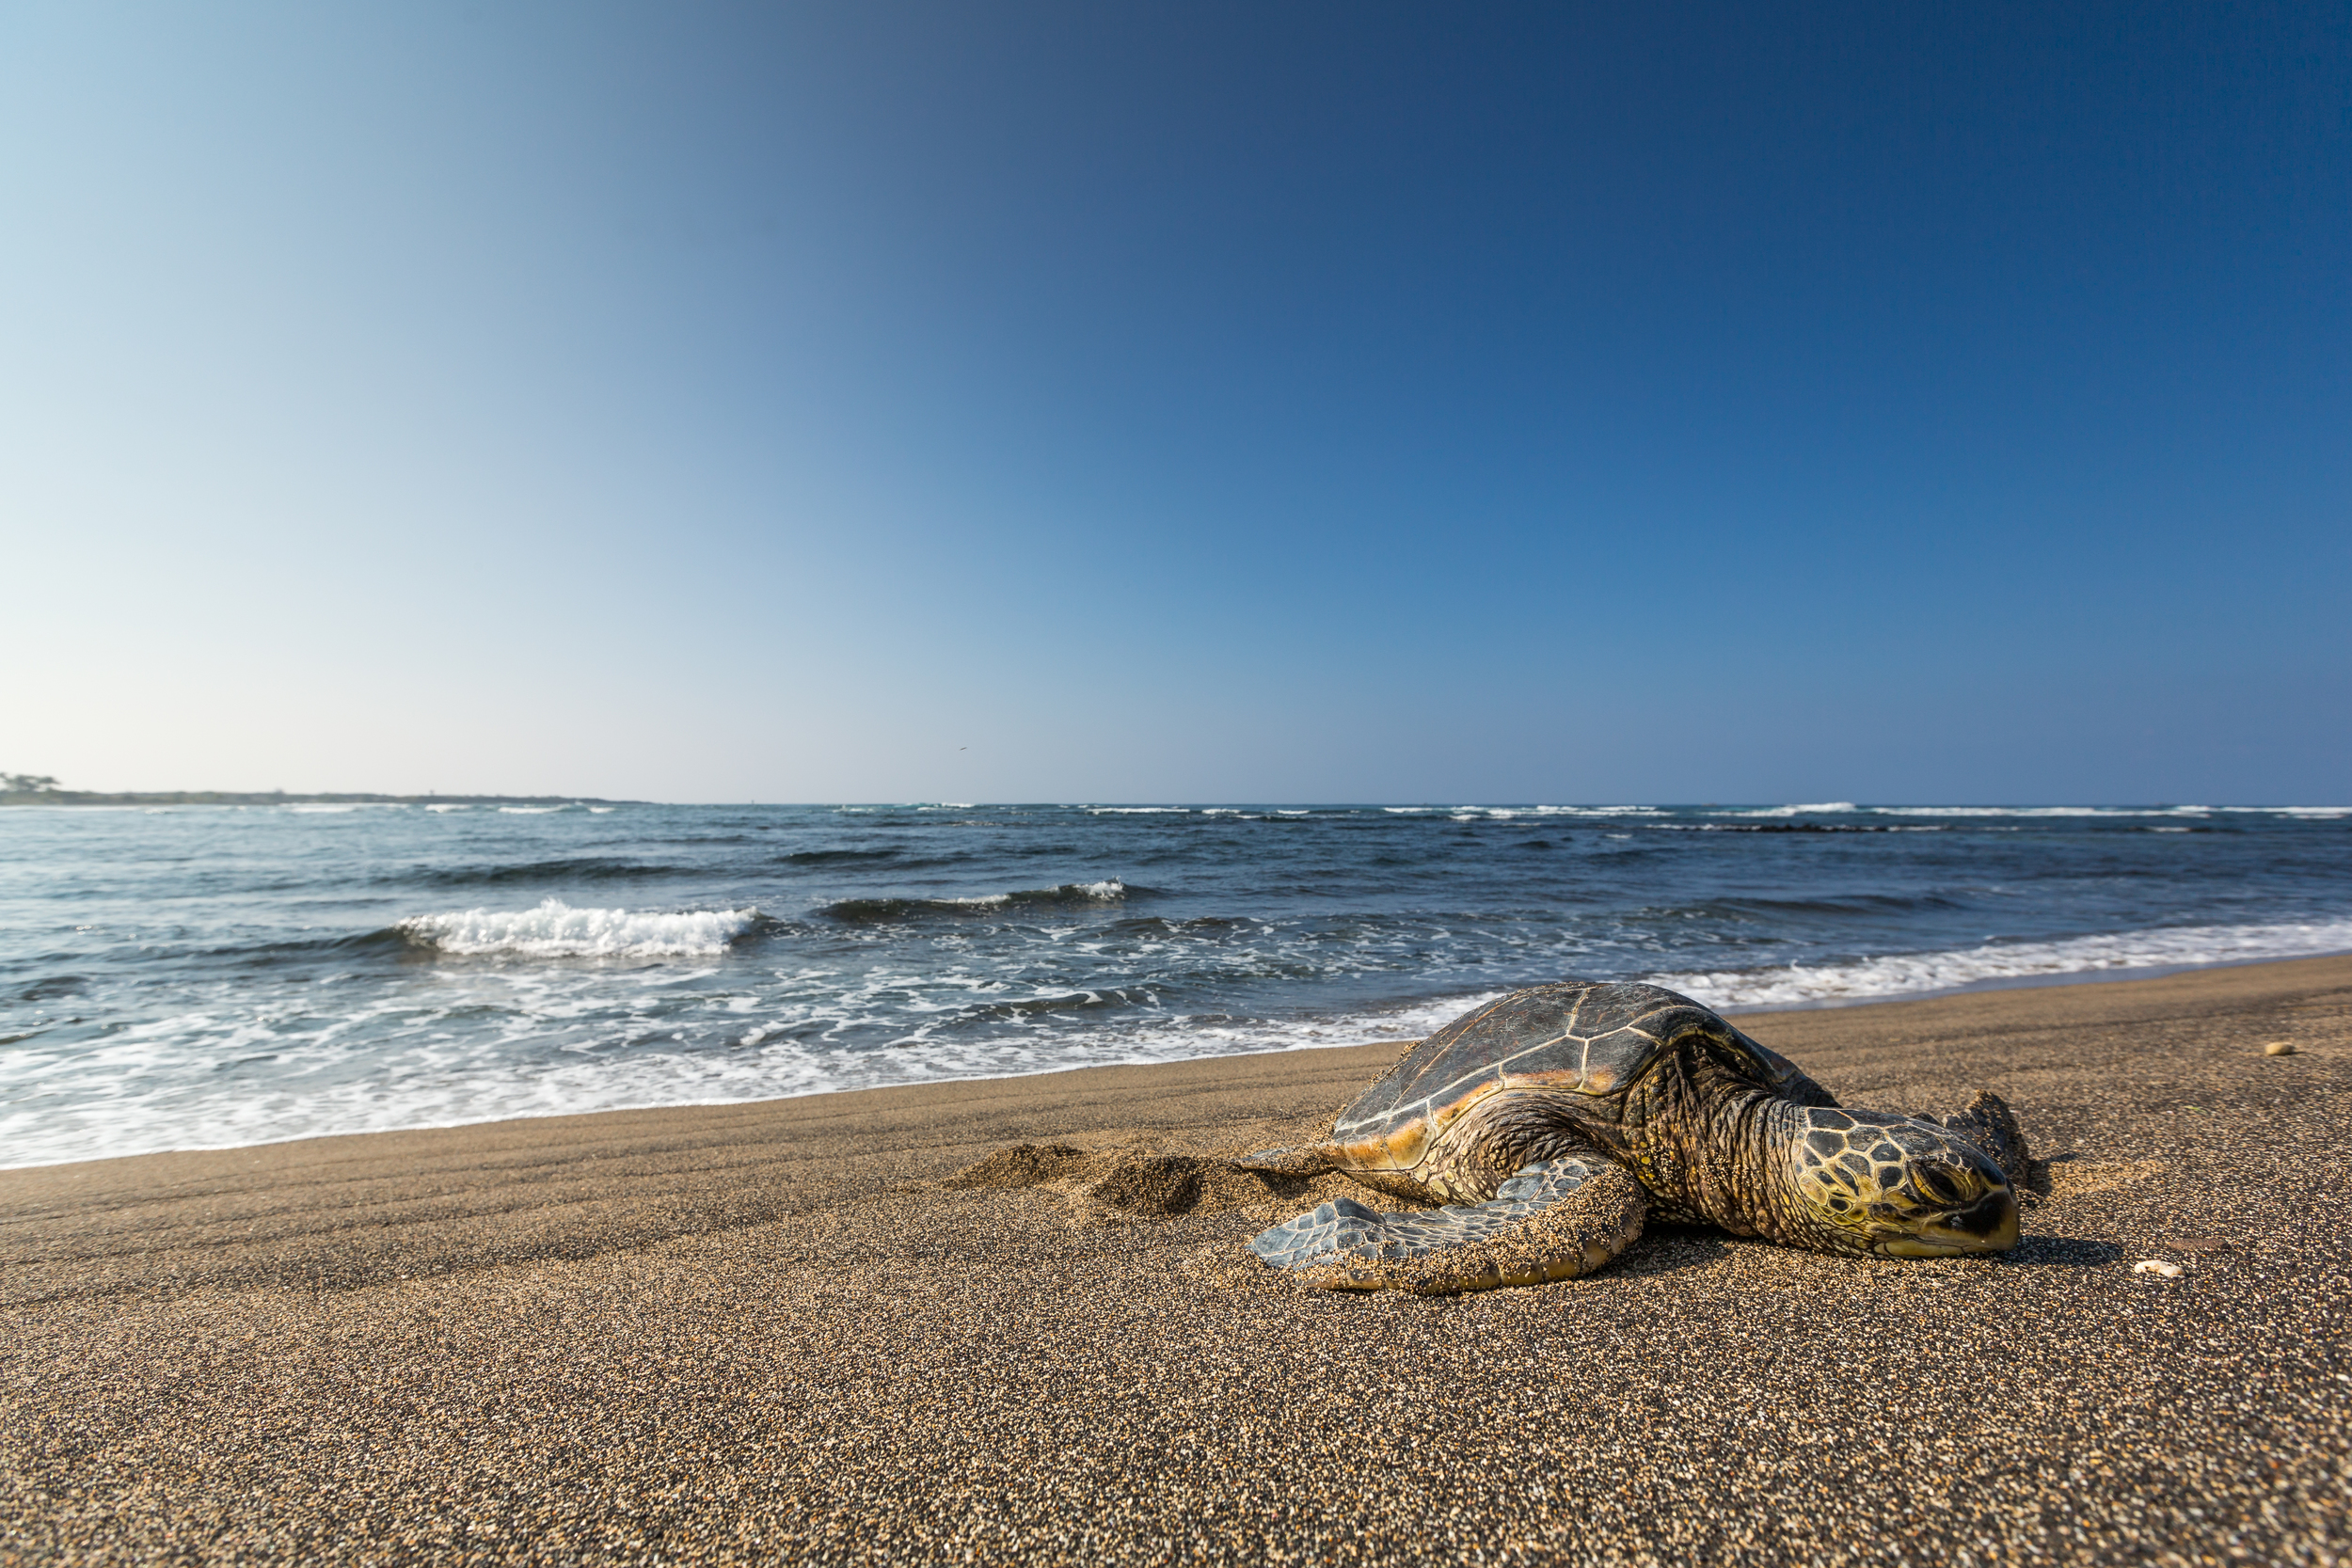 Green Sea Turtle - Chelonia mydas (native)